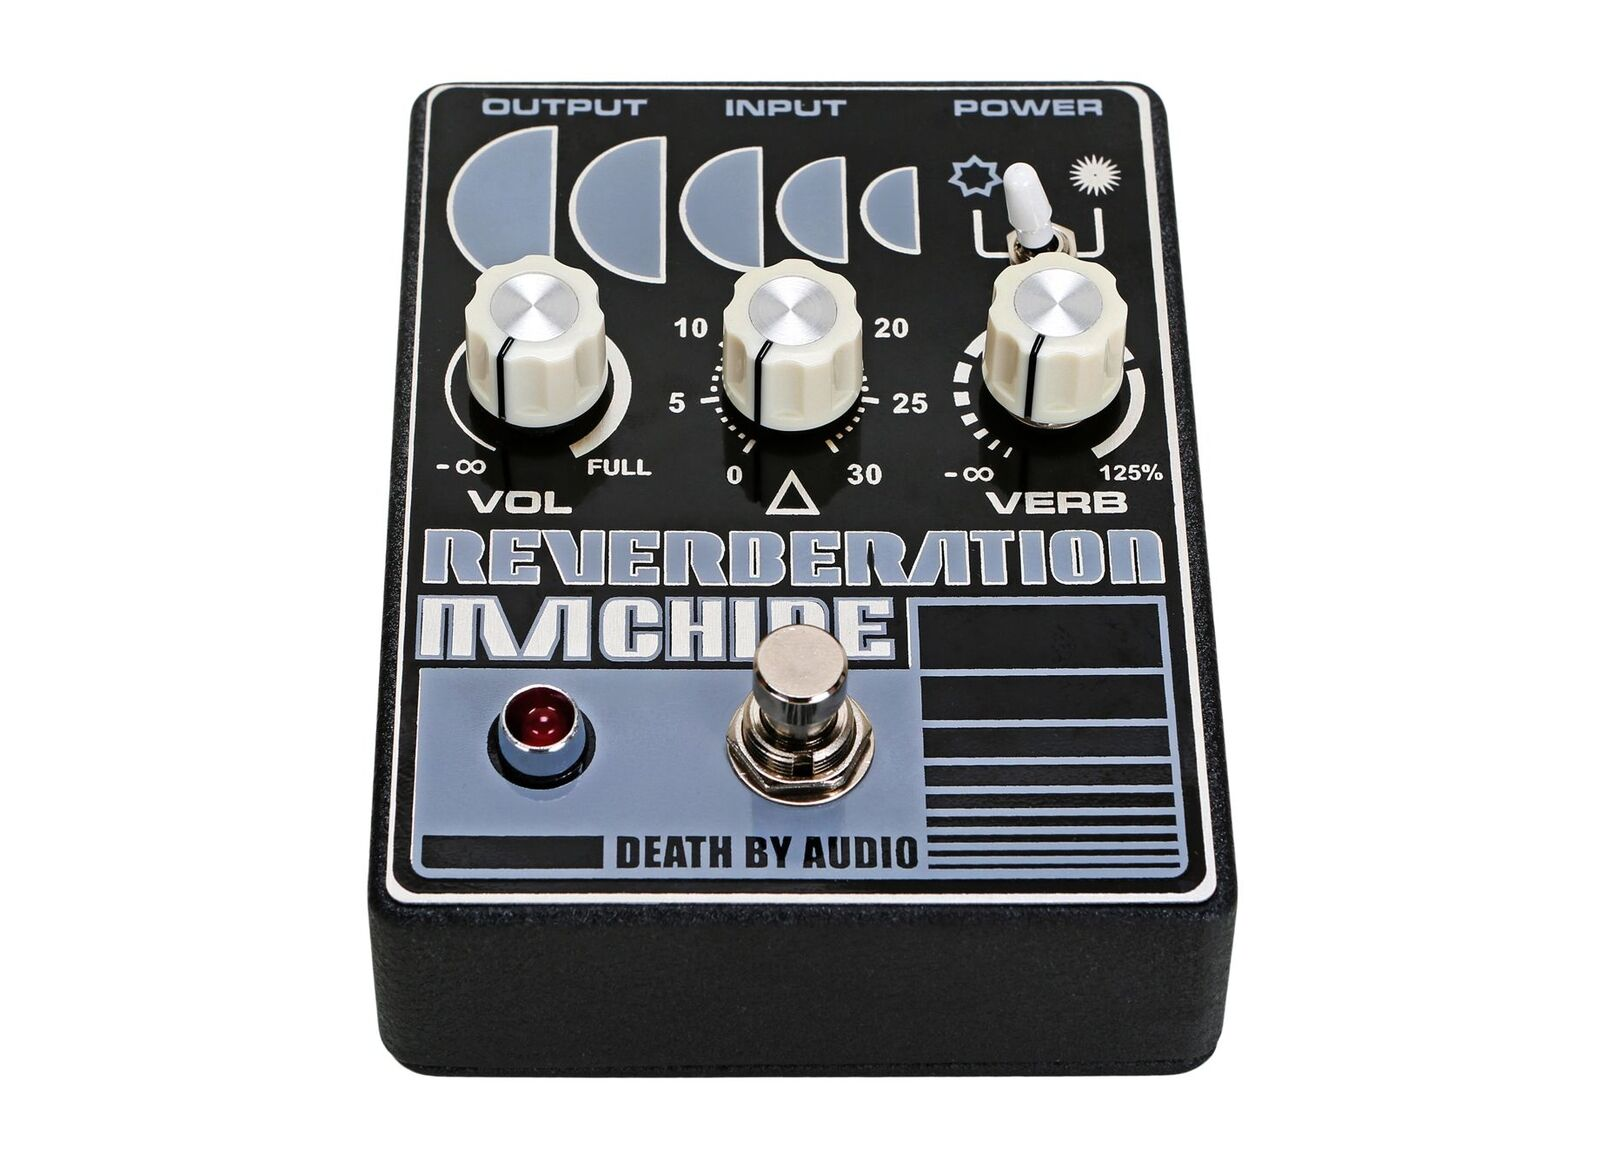 Death By Audio Reverberation Machine Machine Machine Pedal EFFECTS - NEW - PERFECT CIRCUIT ba0809